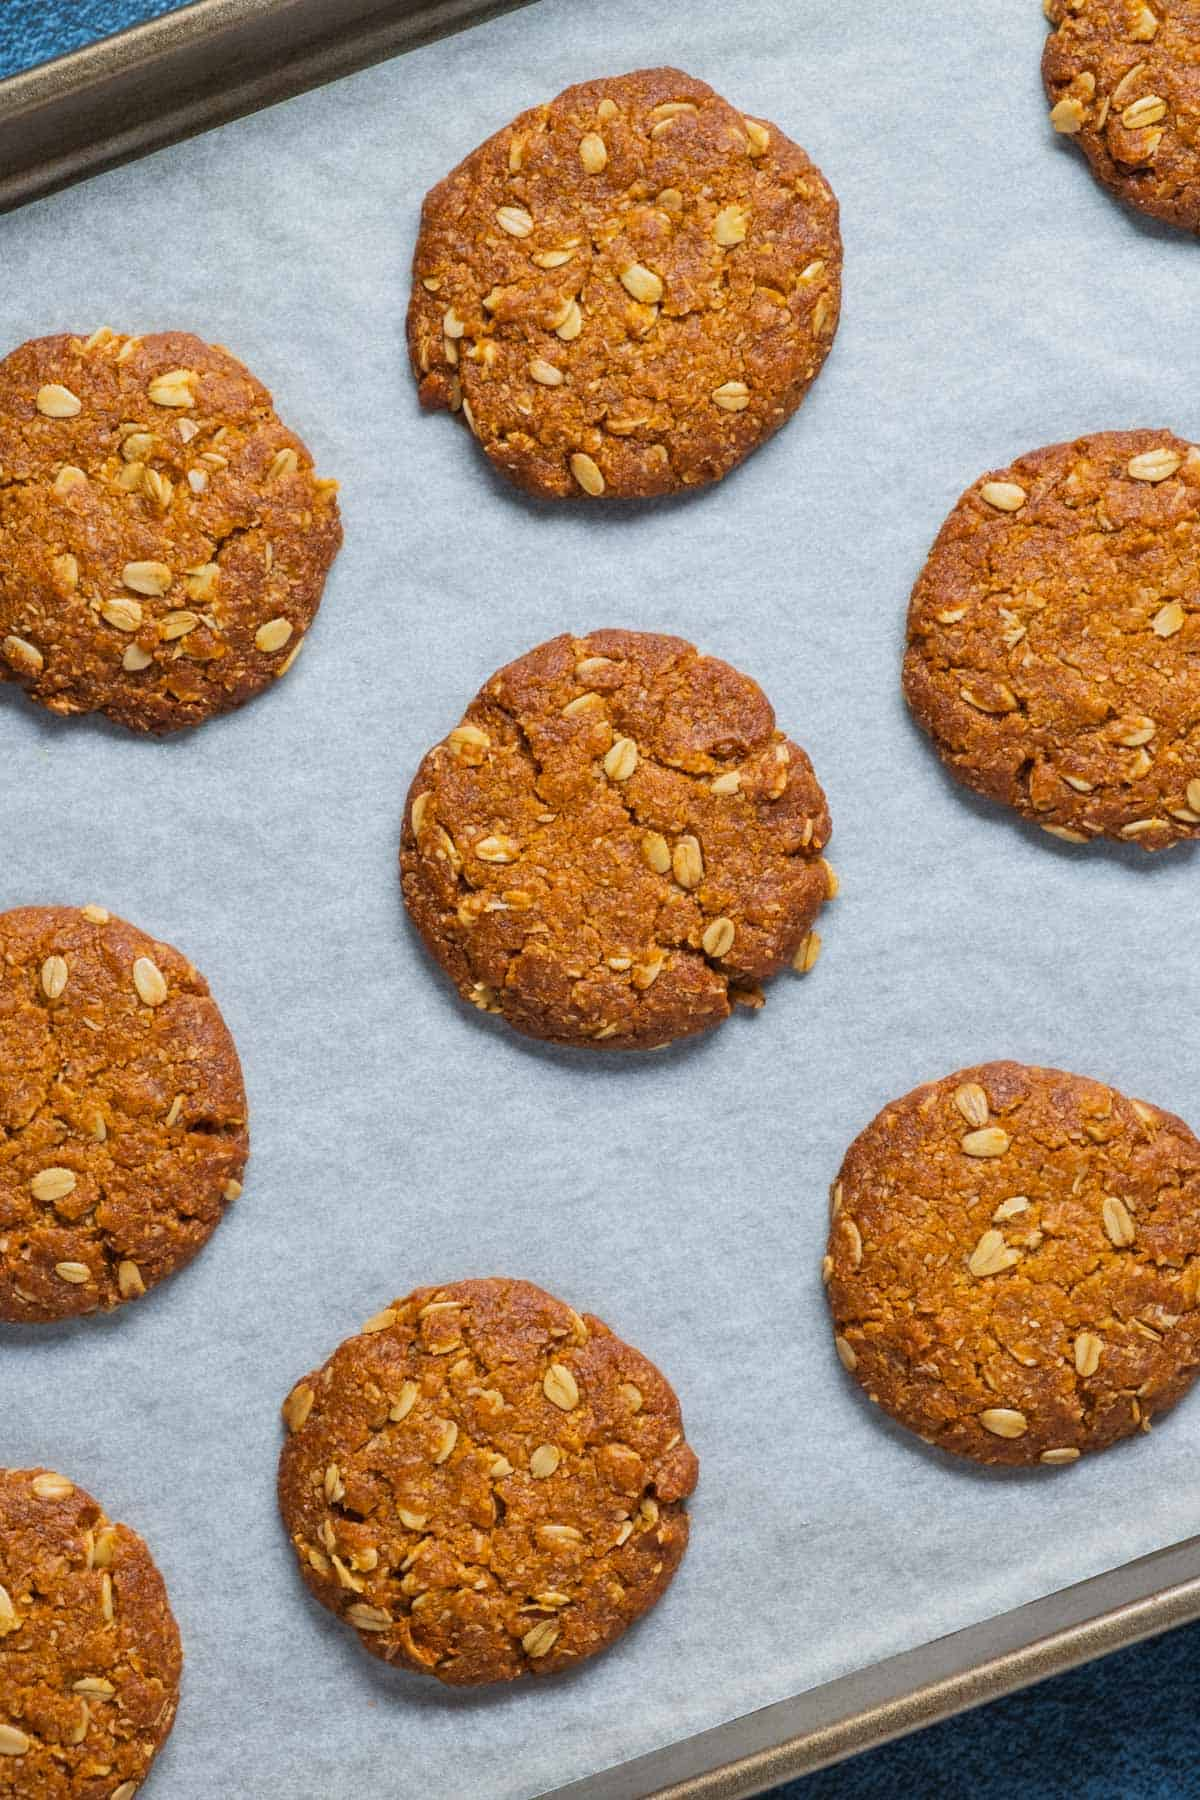 Vegan Anzac biscuits on a parchment lined baking tray.